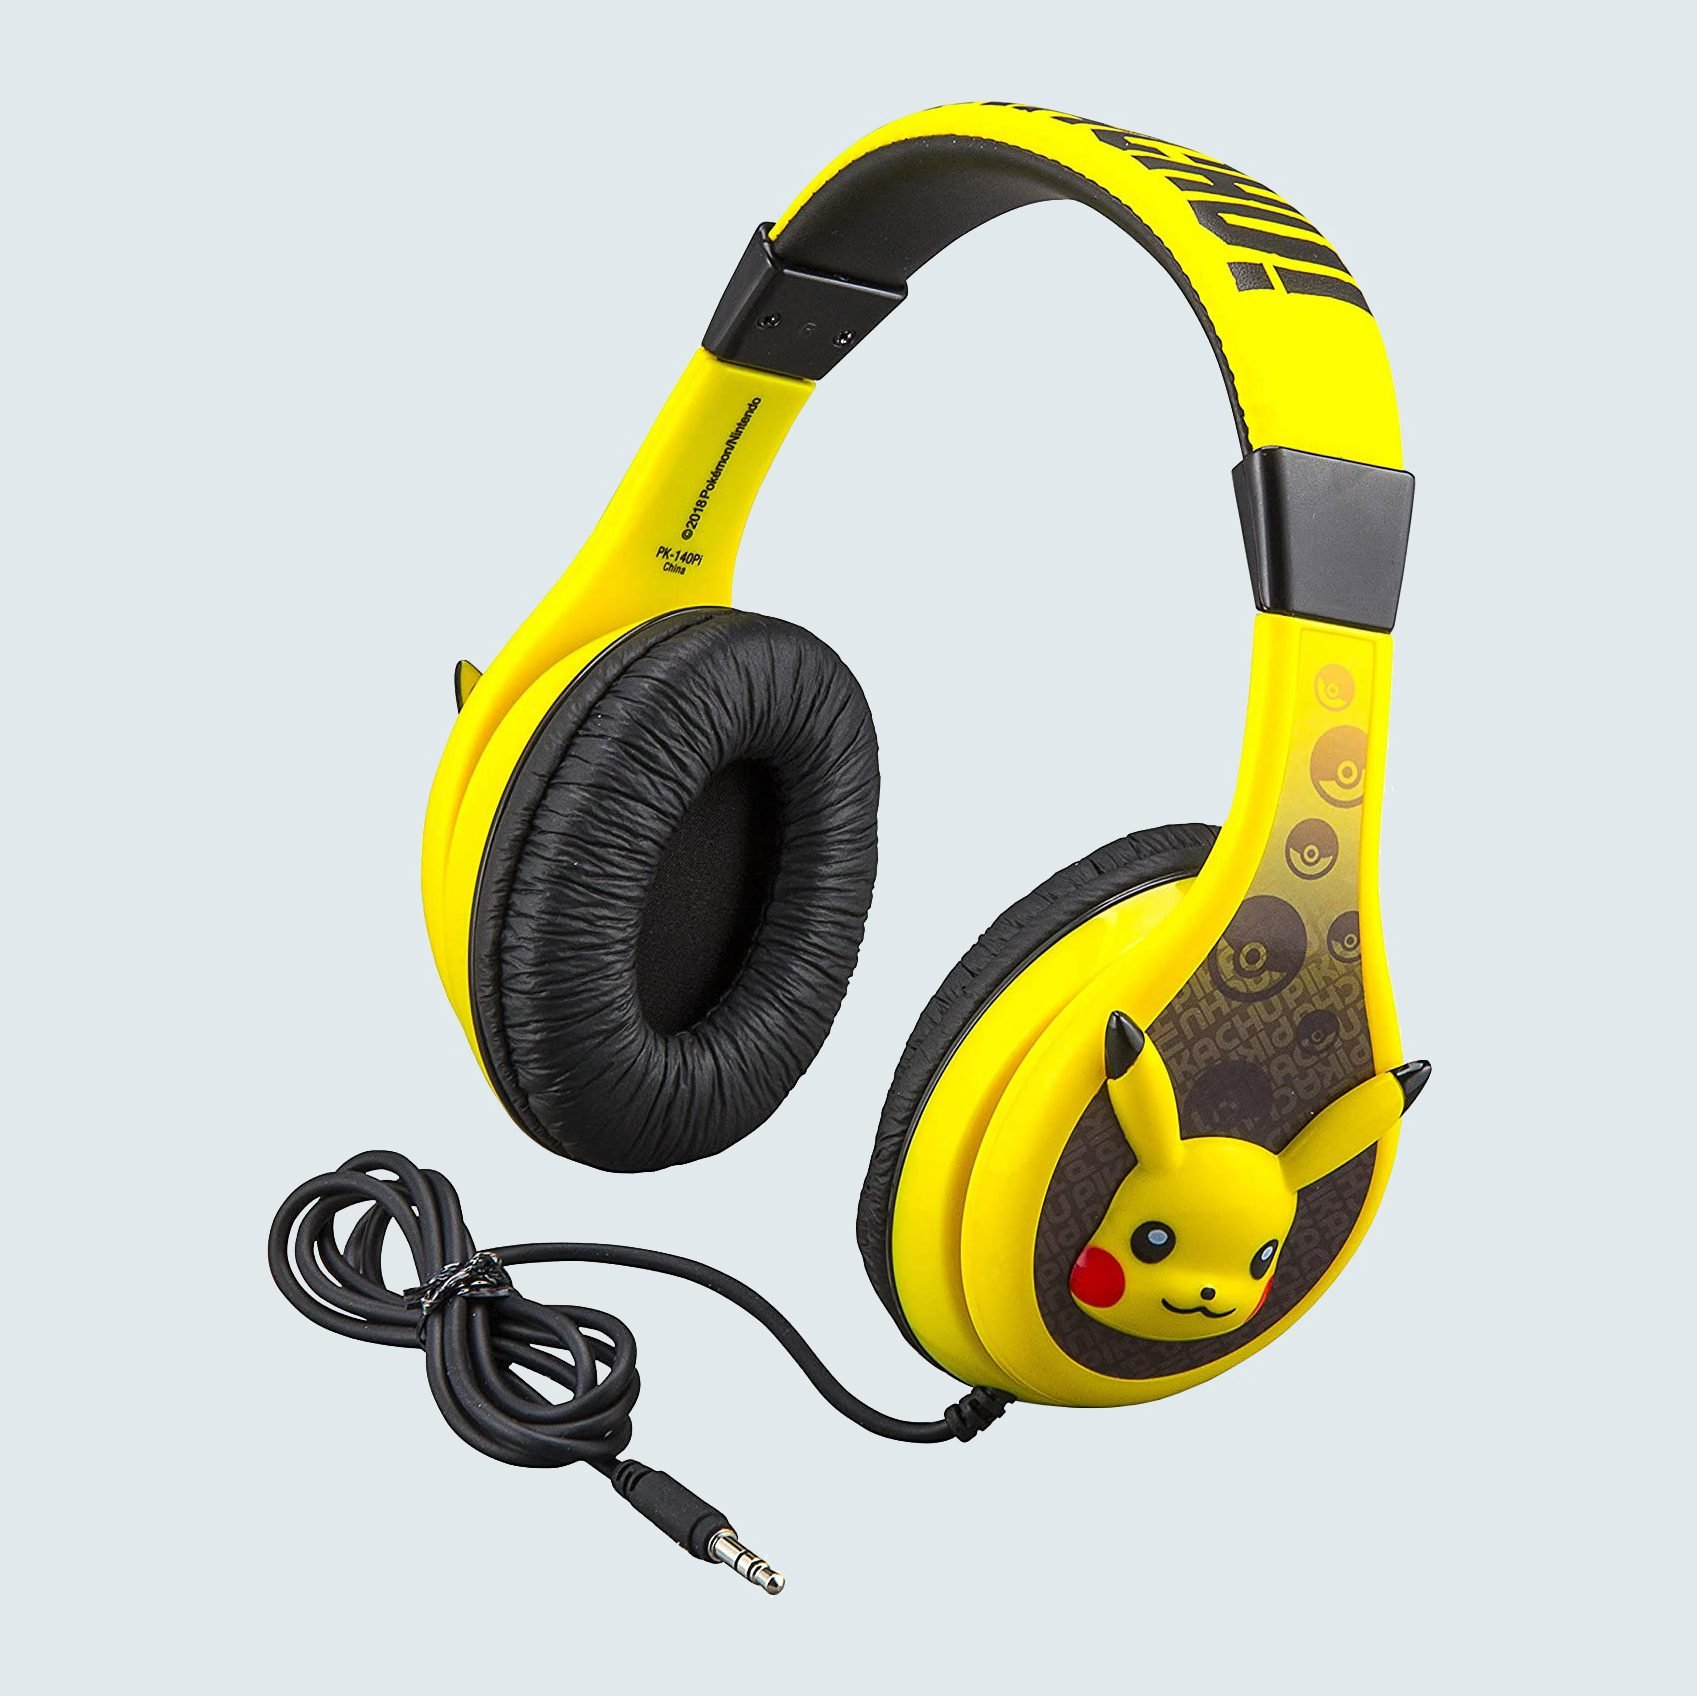 eKids Pokémon Pikachu Kids Headphones